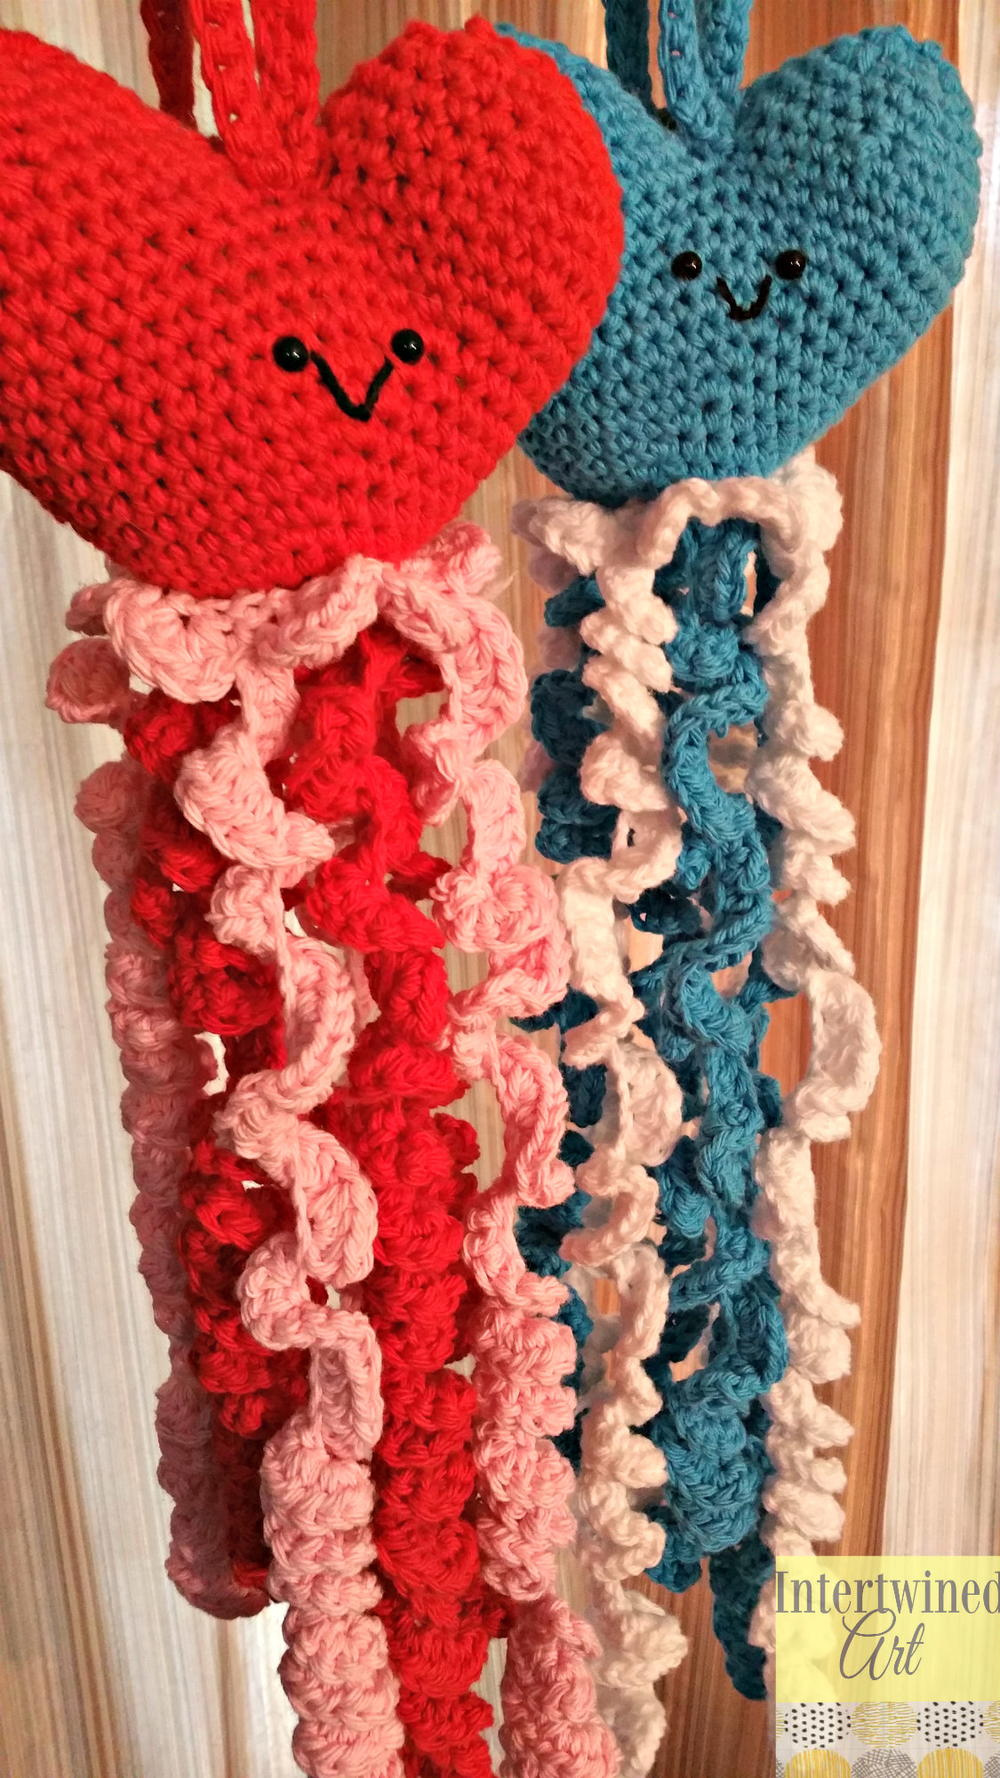 Crochet Heart Hand Towels | AllFreeCrochet.com